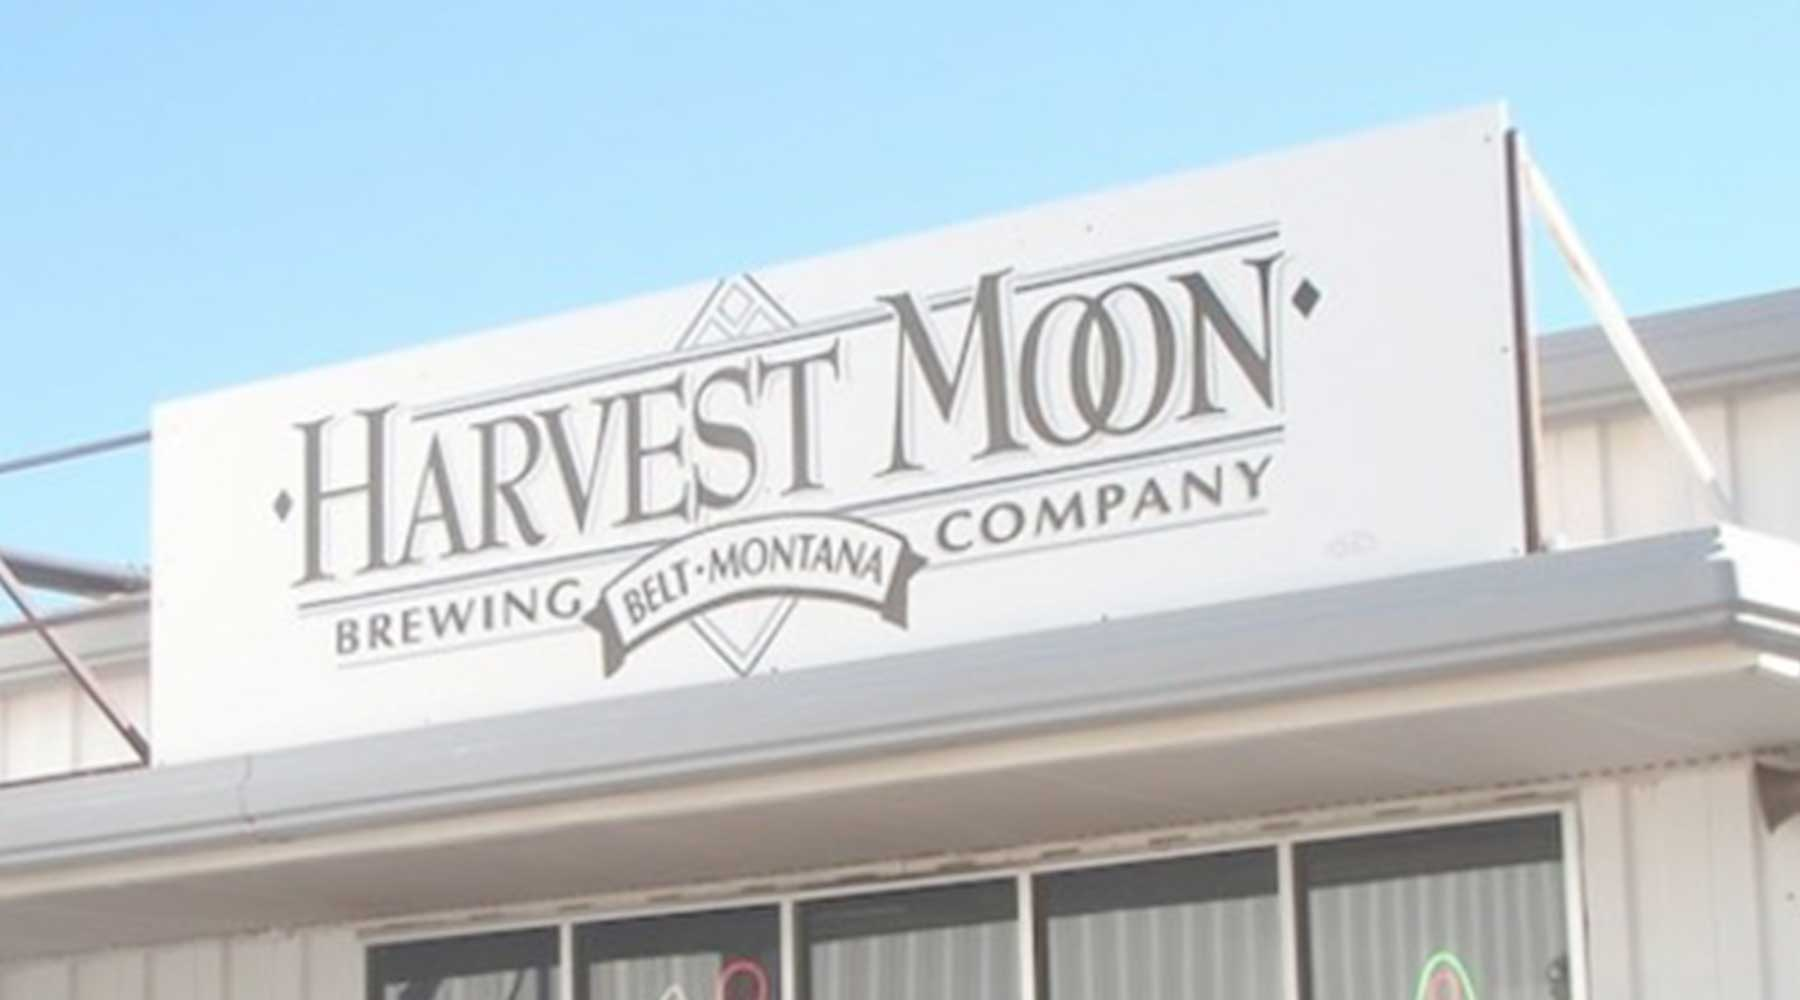 Harvest Moon Brewing | Just Wine